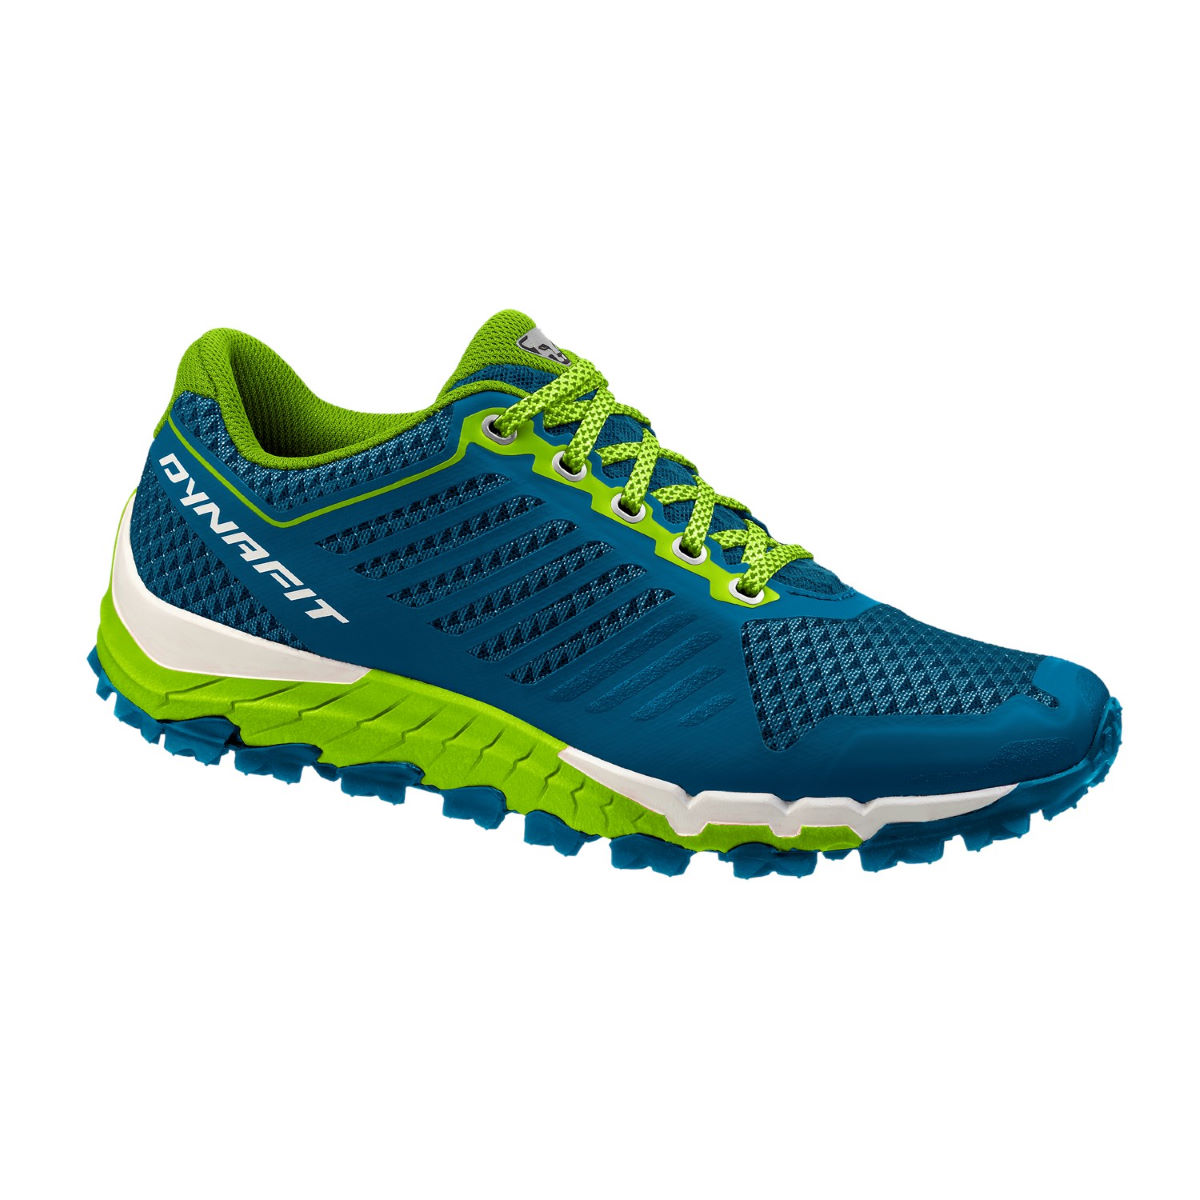 Zapatillas Dynafit Trailbreaker - Zapatillas de trail running